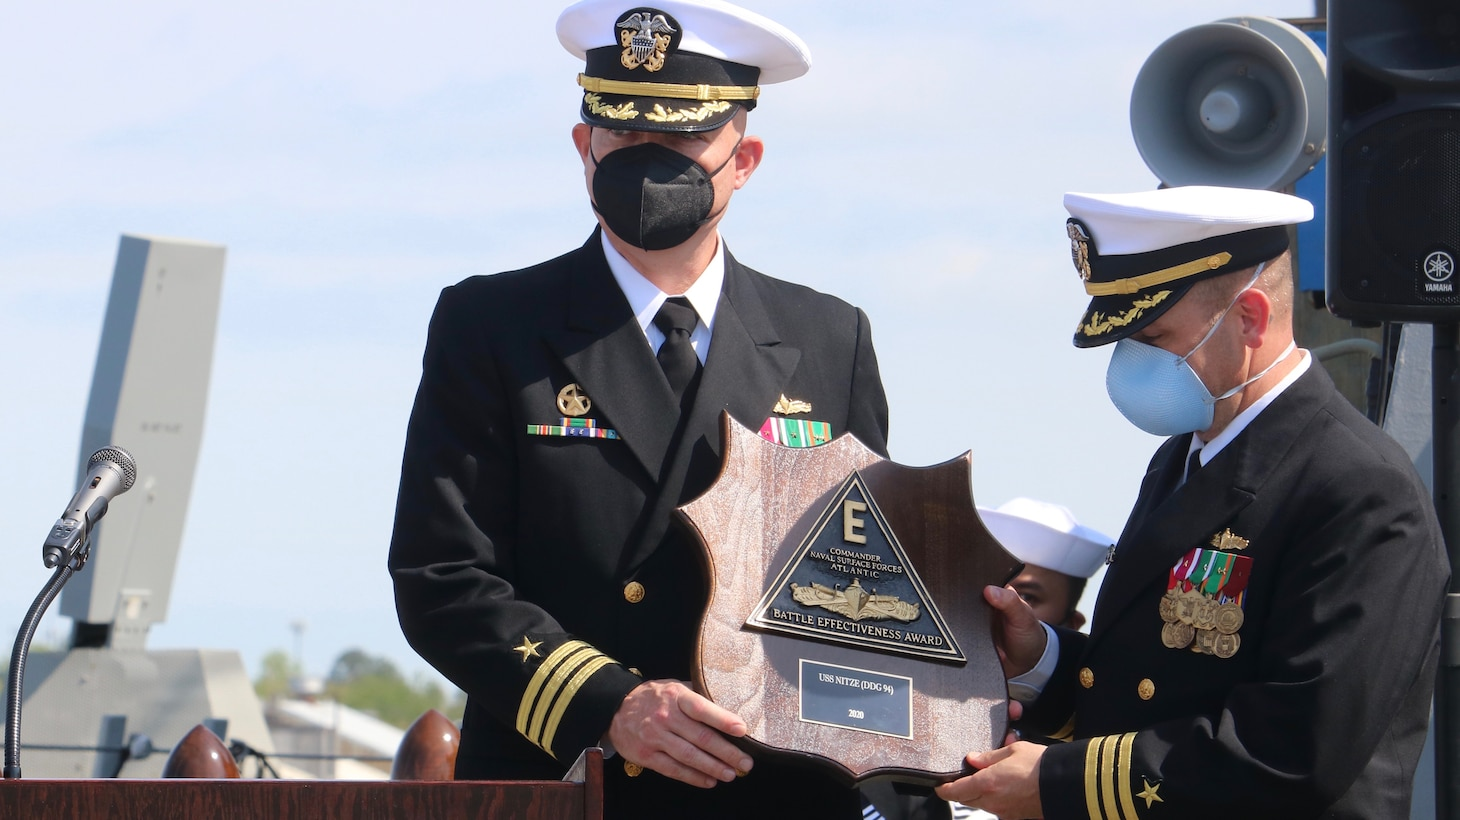 PORTSMOUTH, Va. (April 9, 2021) – Cmdr. Donald J. Curran III, left, and Cmdr. Sam T. Sareini, right, are presented with the Battle Effectiveness Award during the Arleigh Burke-class guided-missile destroyer USS Nitze's change of command ceremony. Sareini was relieved by Curran during the ceremony. (U.S. Navy photo by Ens. William Fong/Released)